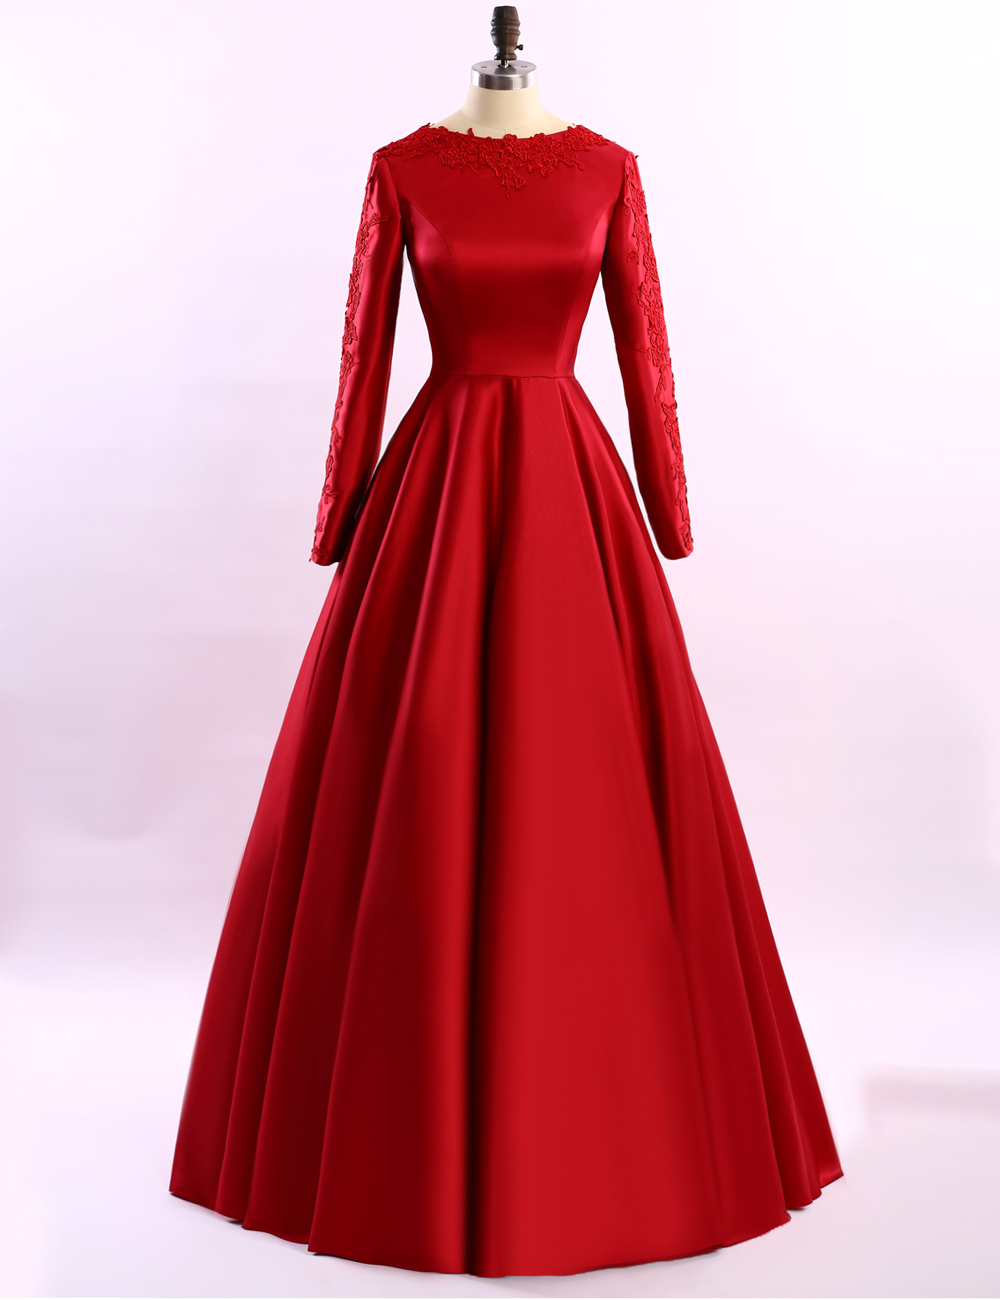 Cheap prom dresses 2017,Simple Long Sleeve Red Evening Dresses 2017